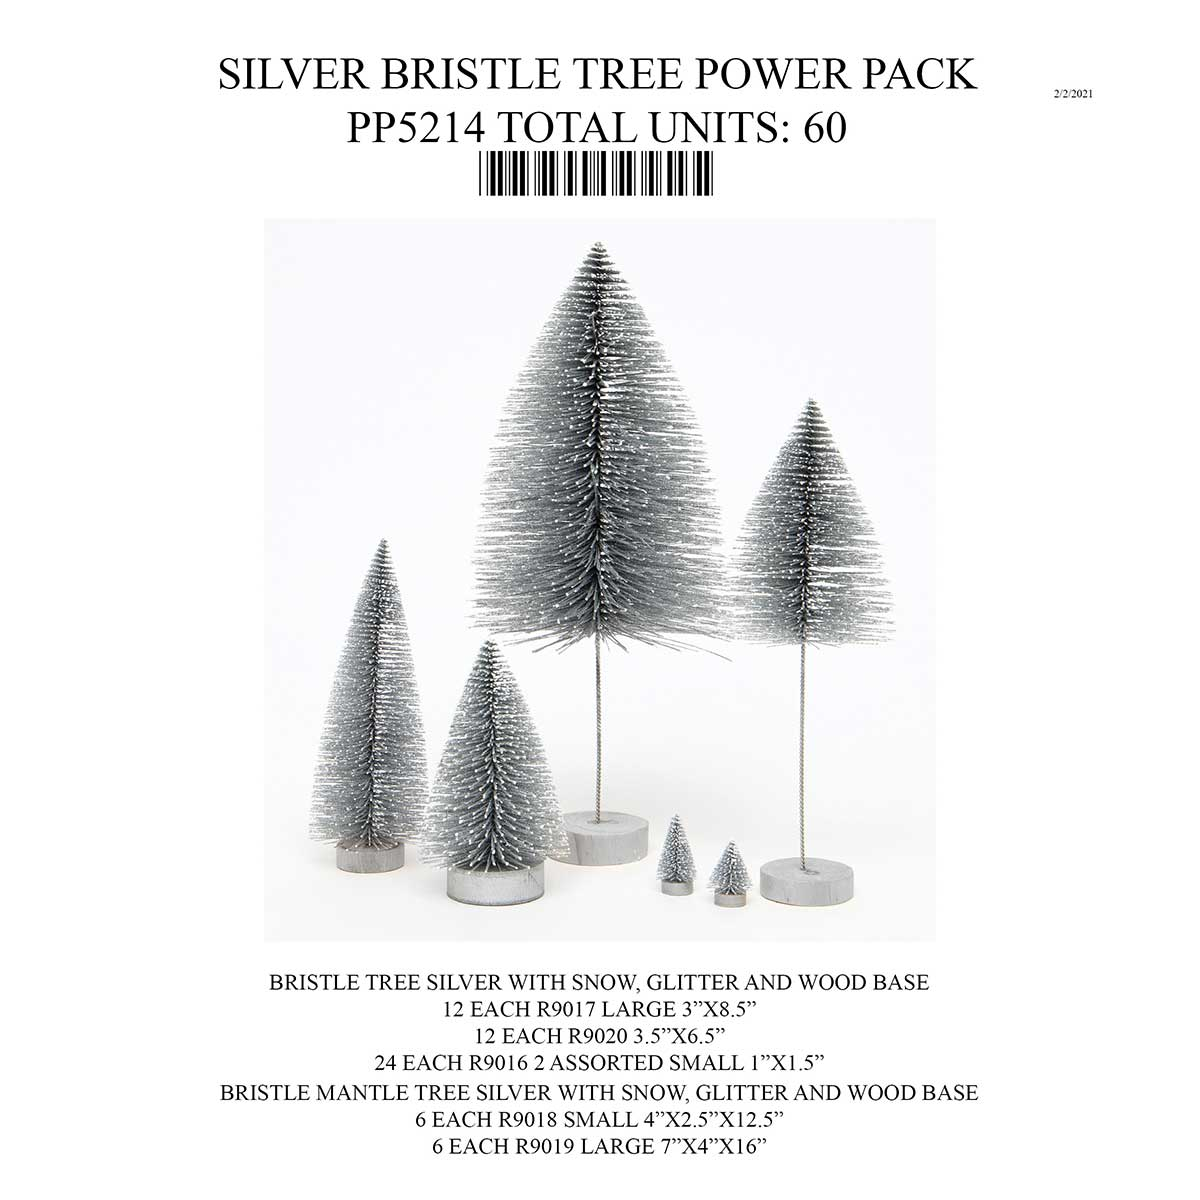 SILVER BRISTLE TREE POWER PACK PP5214 60 UNITS